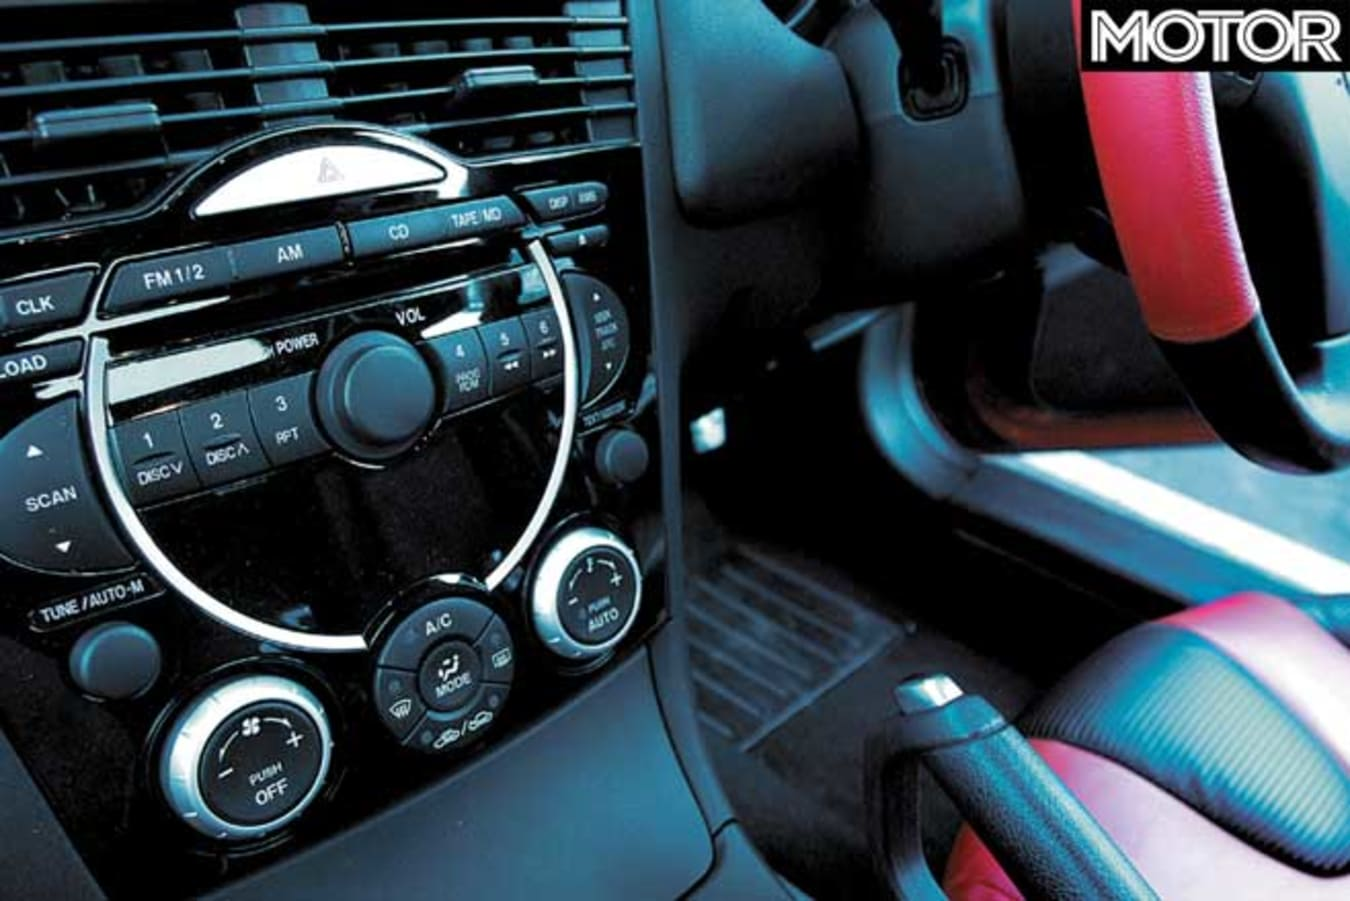 Performance Car Of The Year 2004 Mazda RX 8 Centre Console Jpg